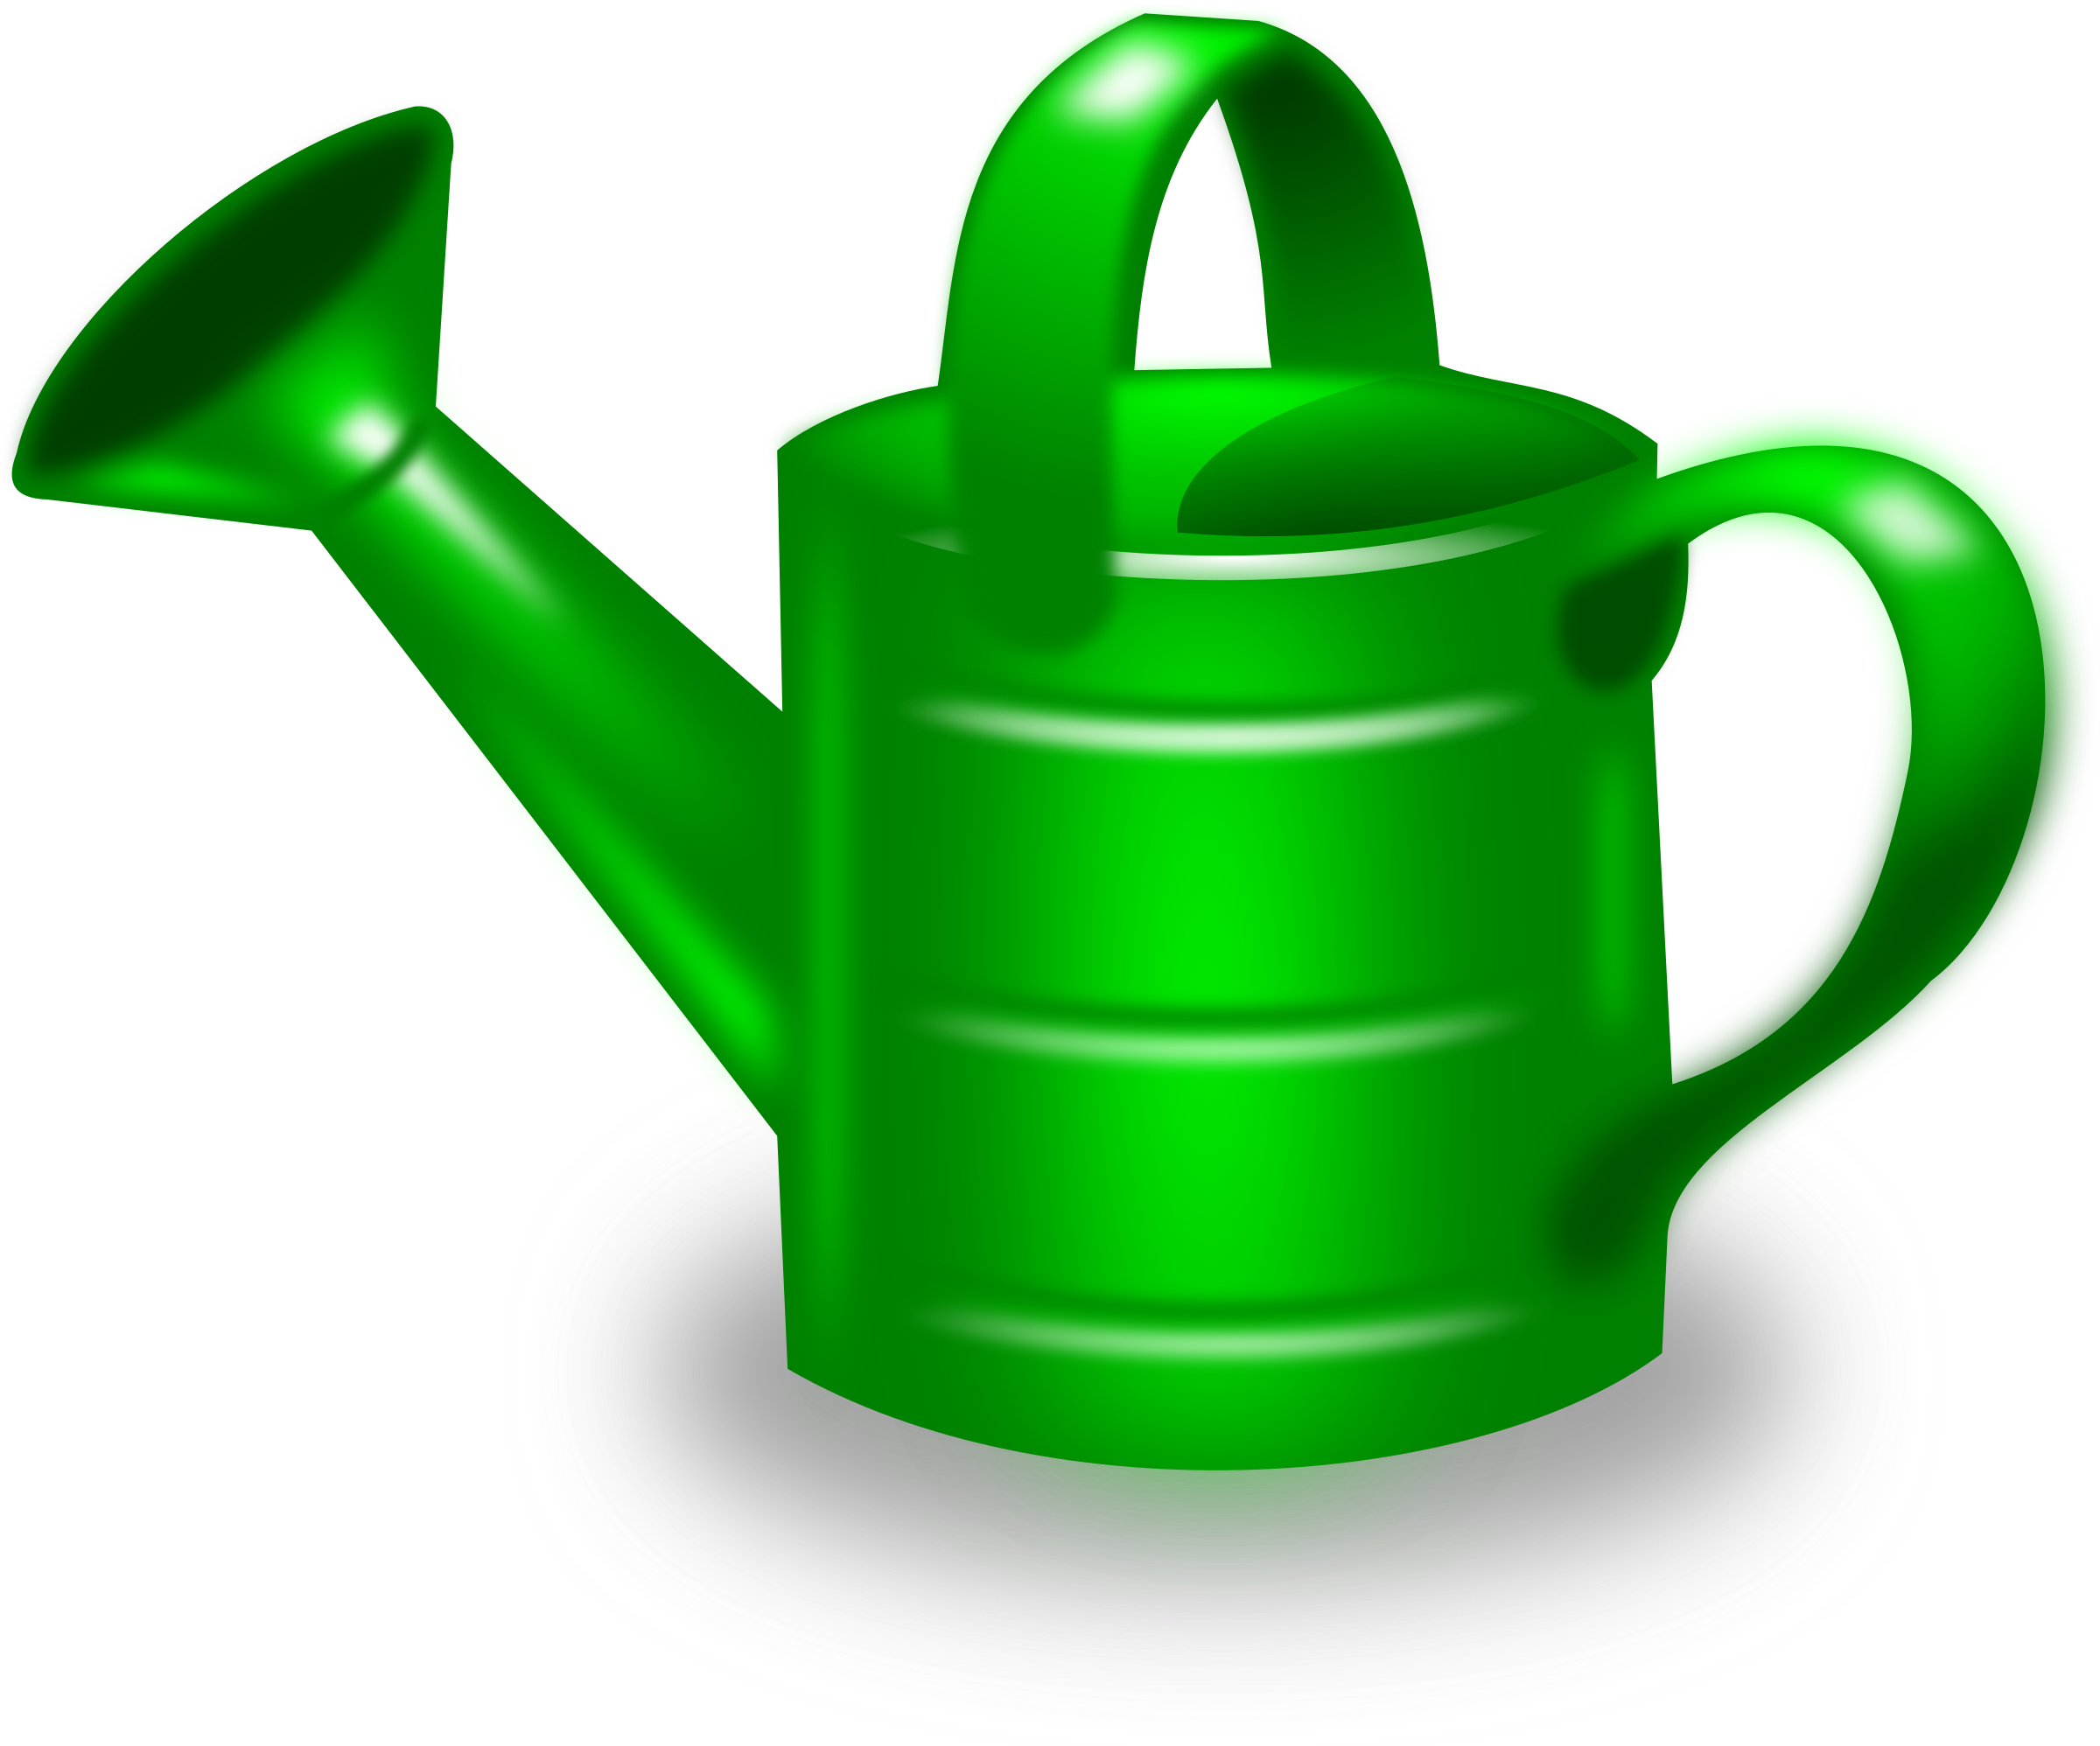 Clipart watering can clipart best - Sprinkling cans ...